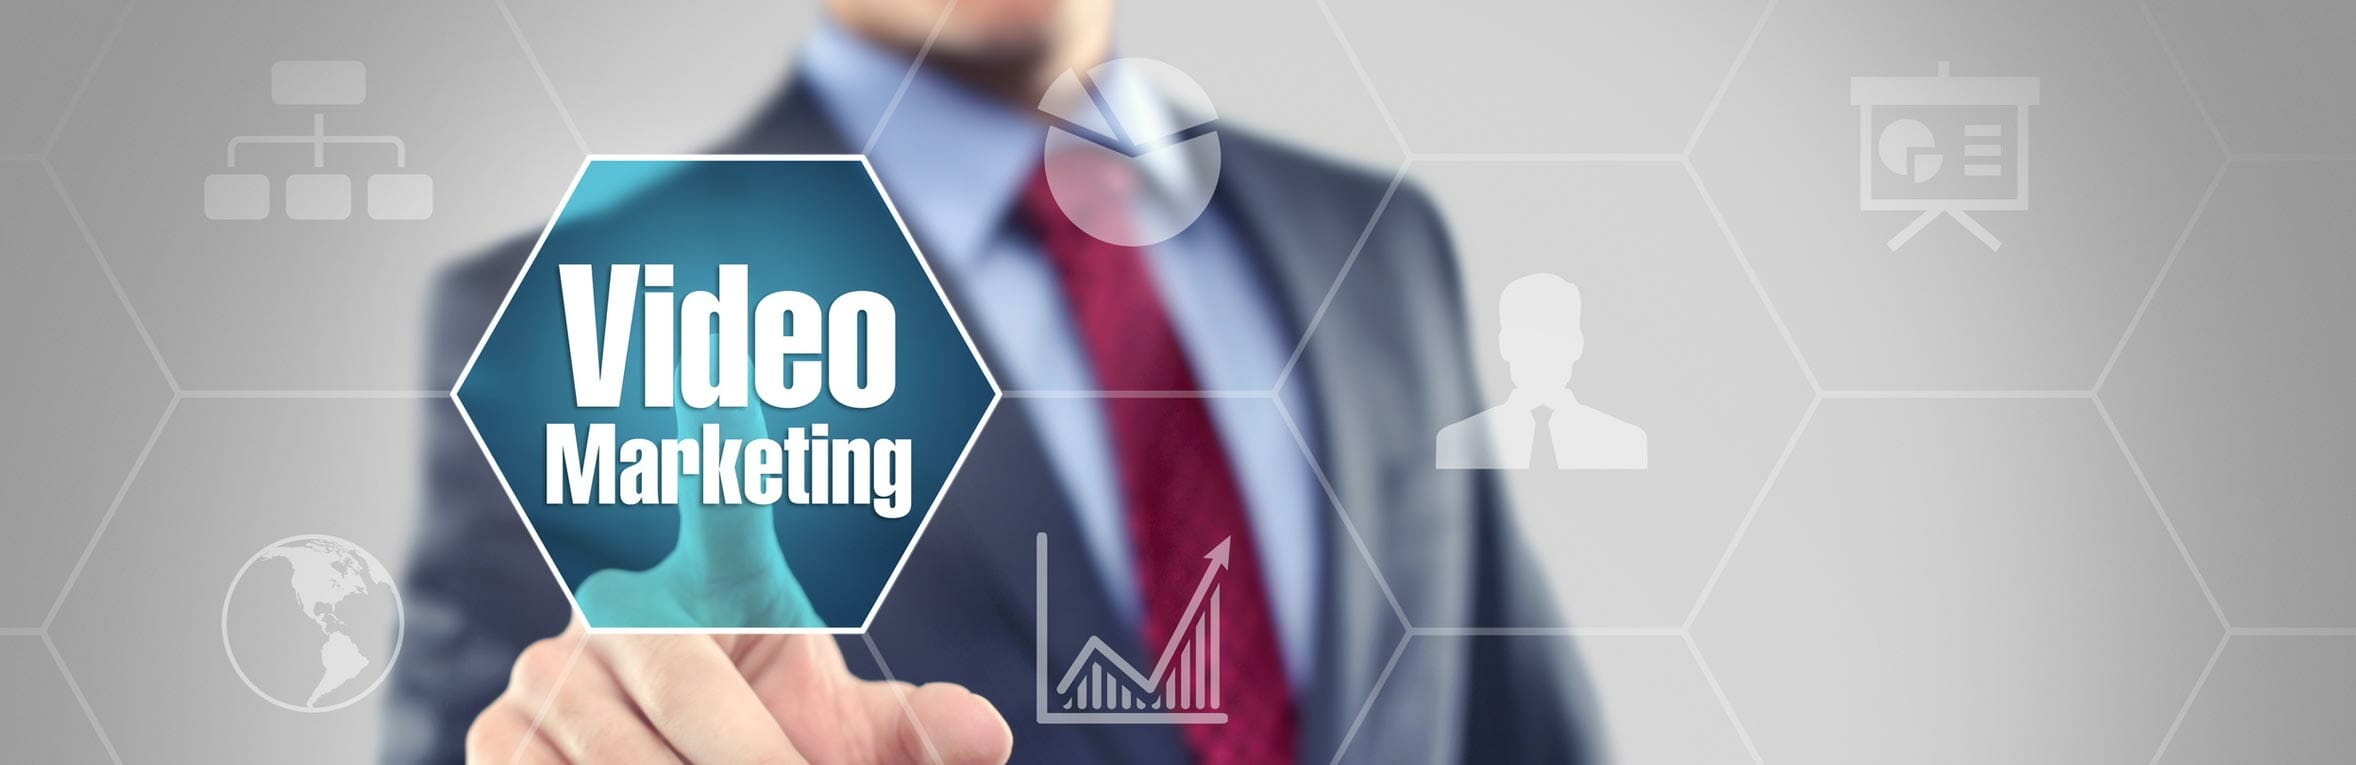 Videomarketing Business